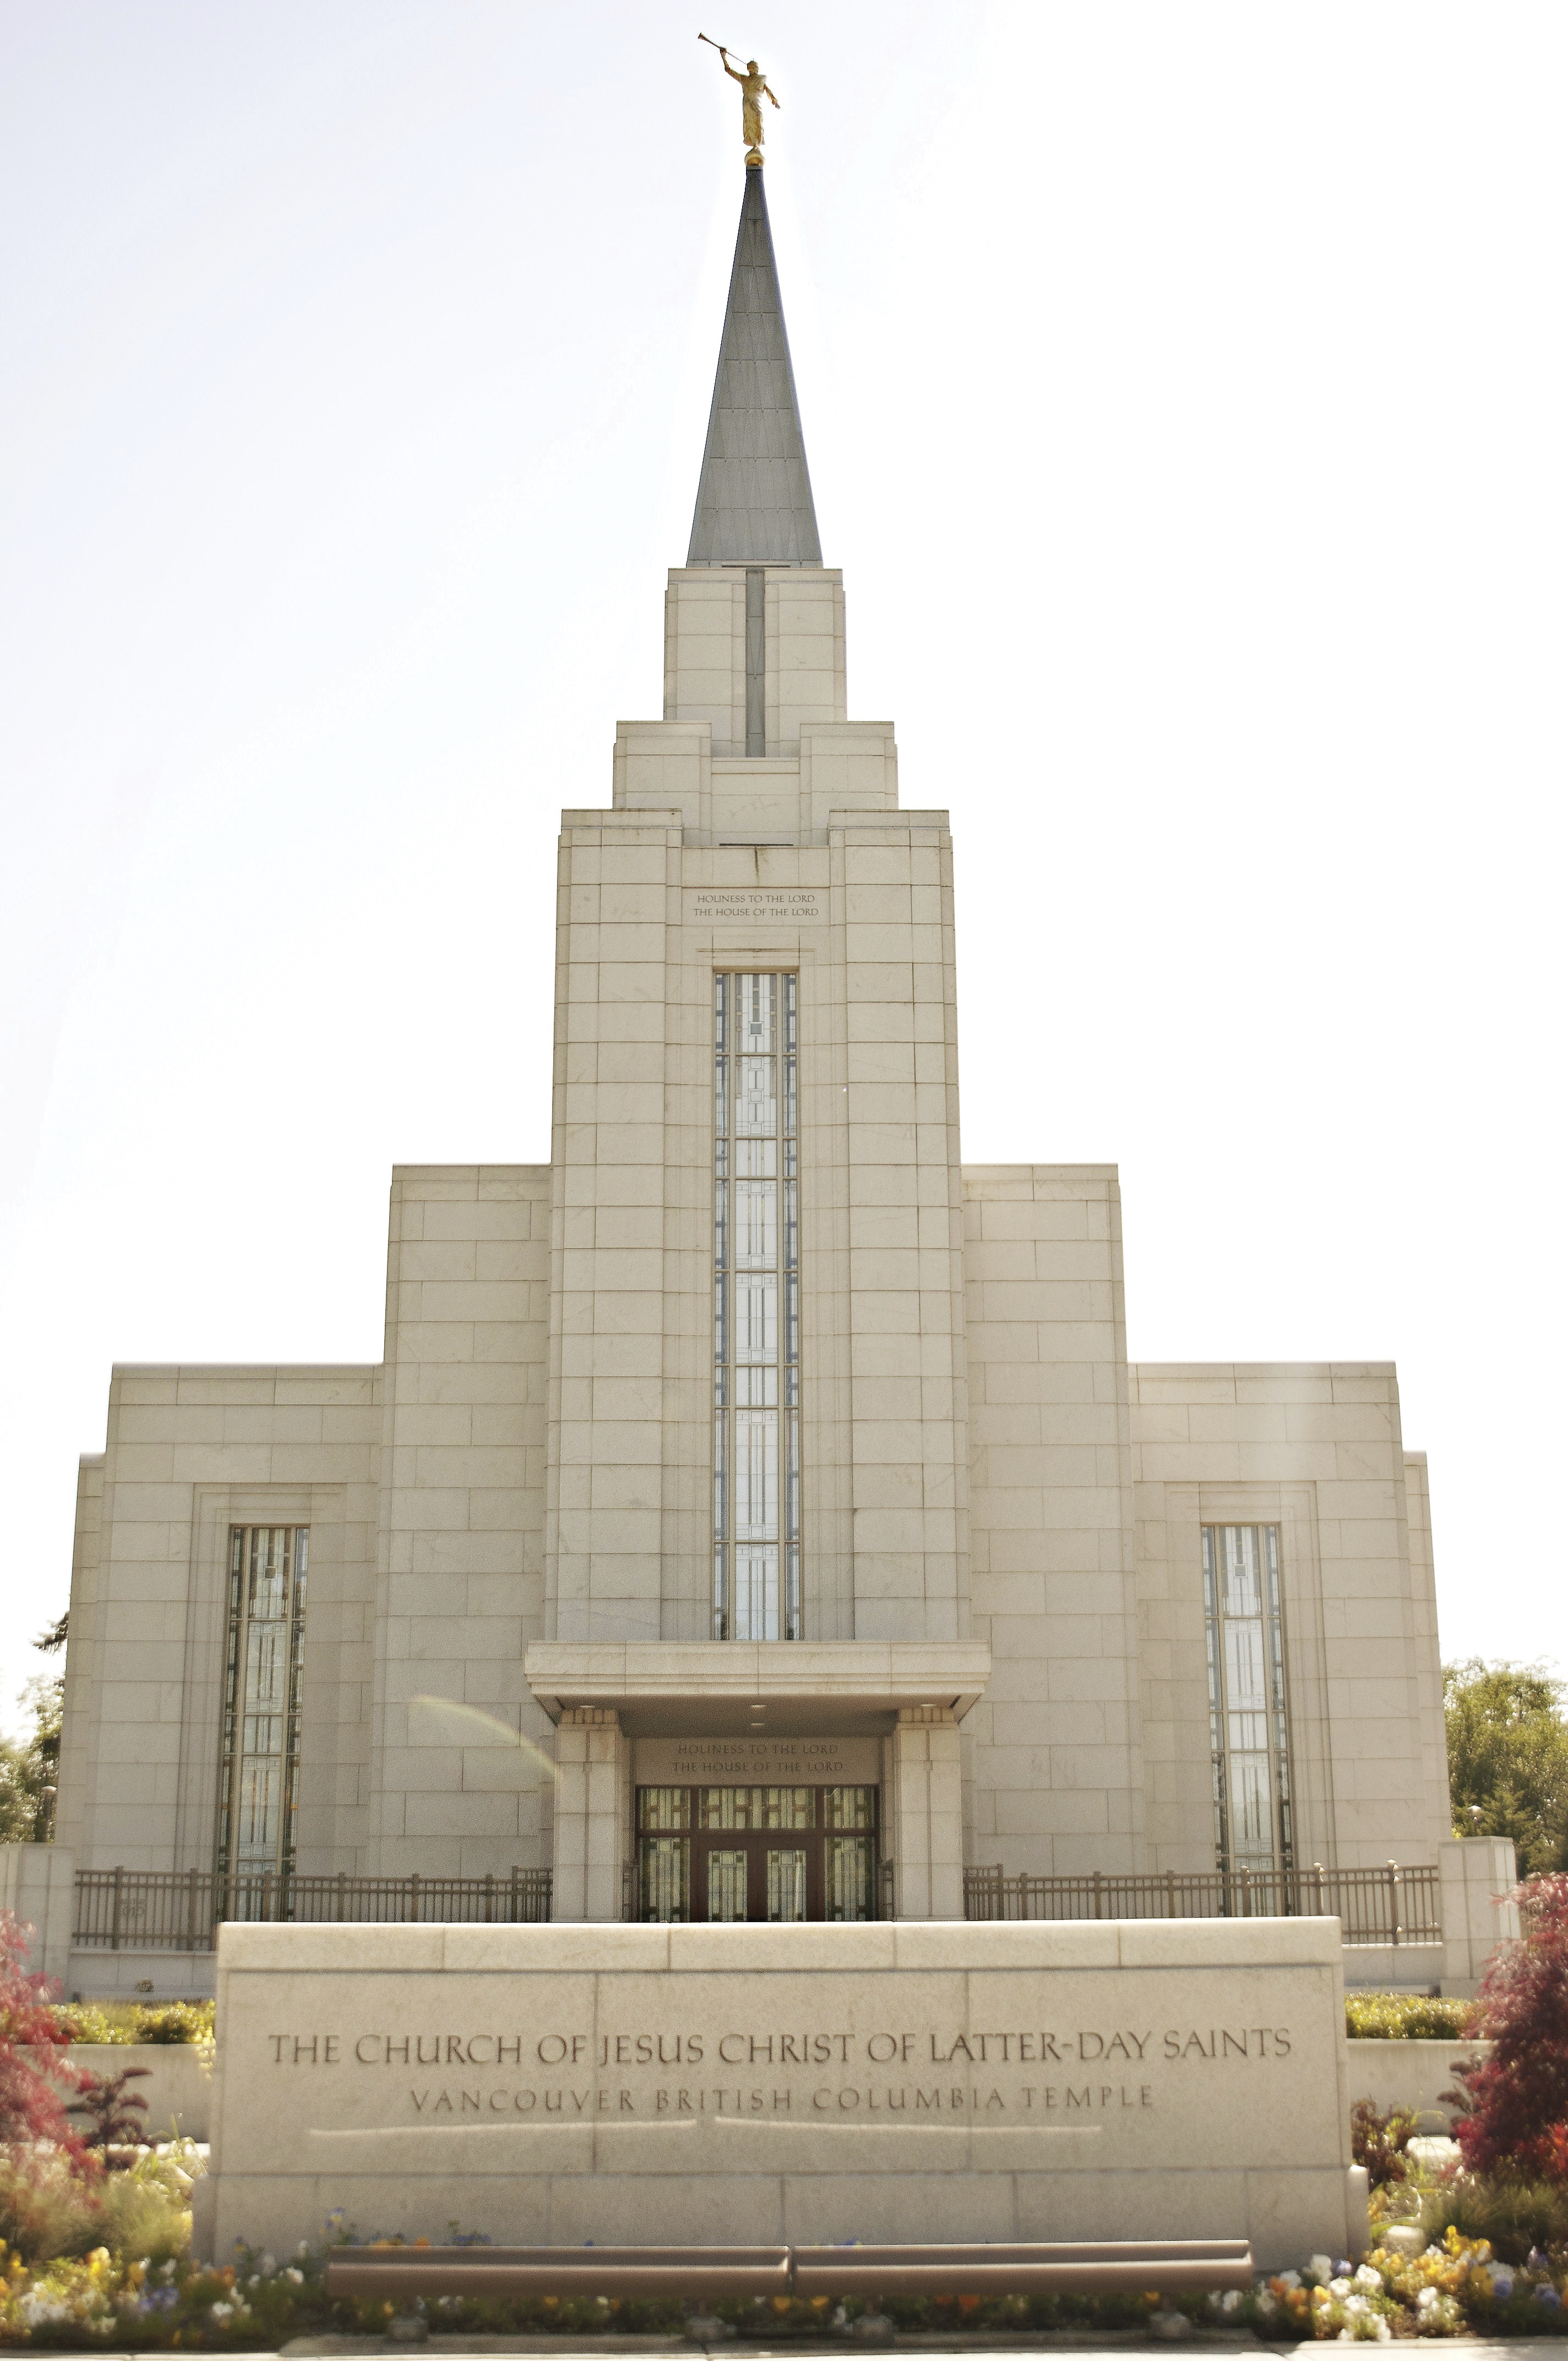 The entire Vancouver British Columbia Temple, with the name sign, entrance, windows, and spire.